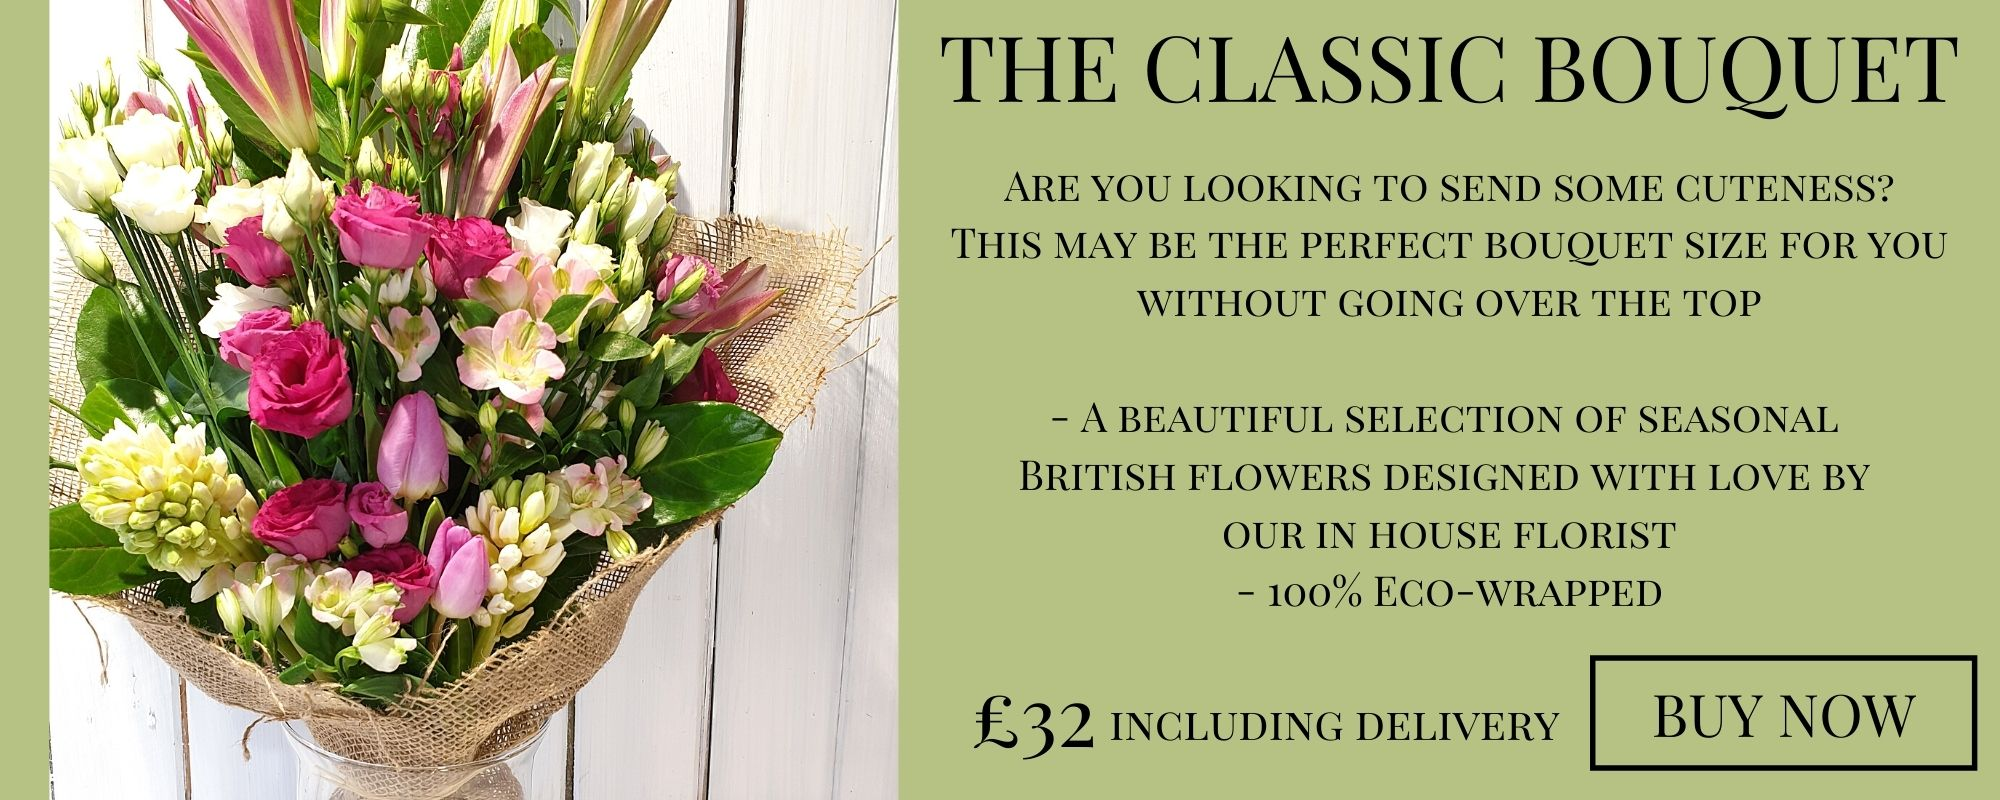 The Classic Bouquet Subscription